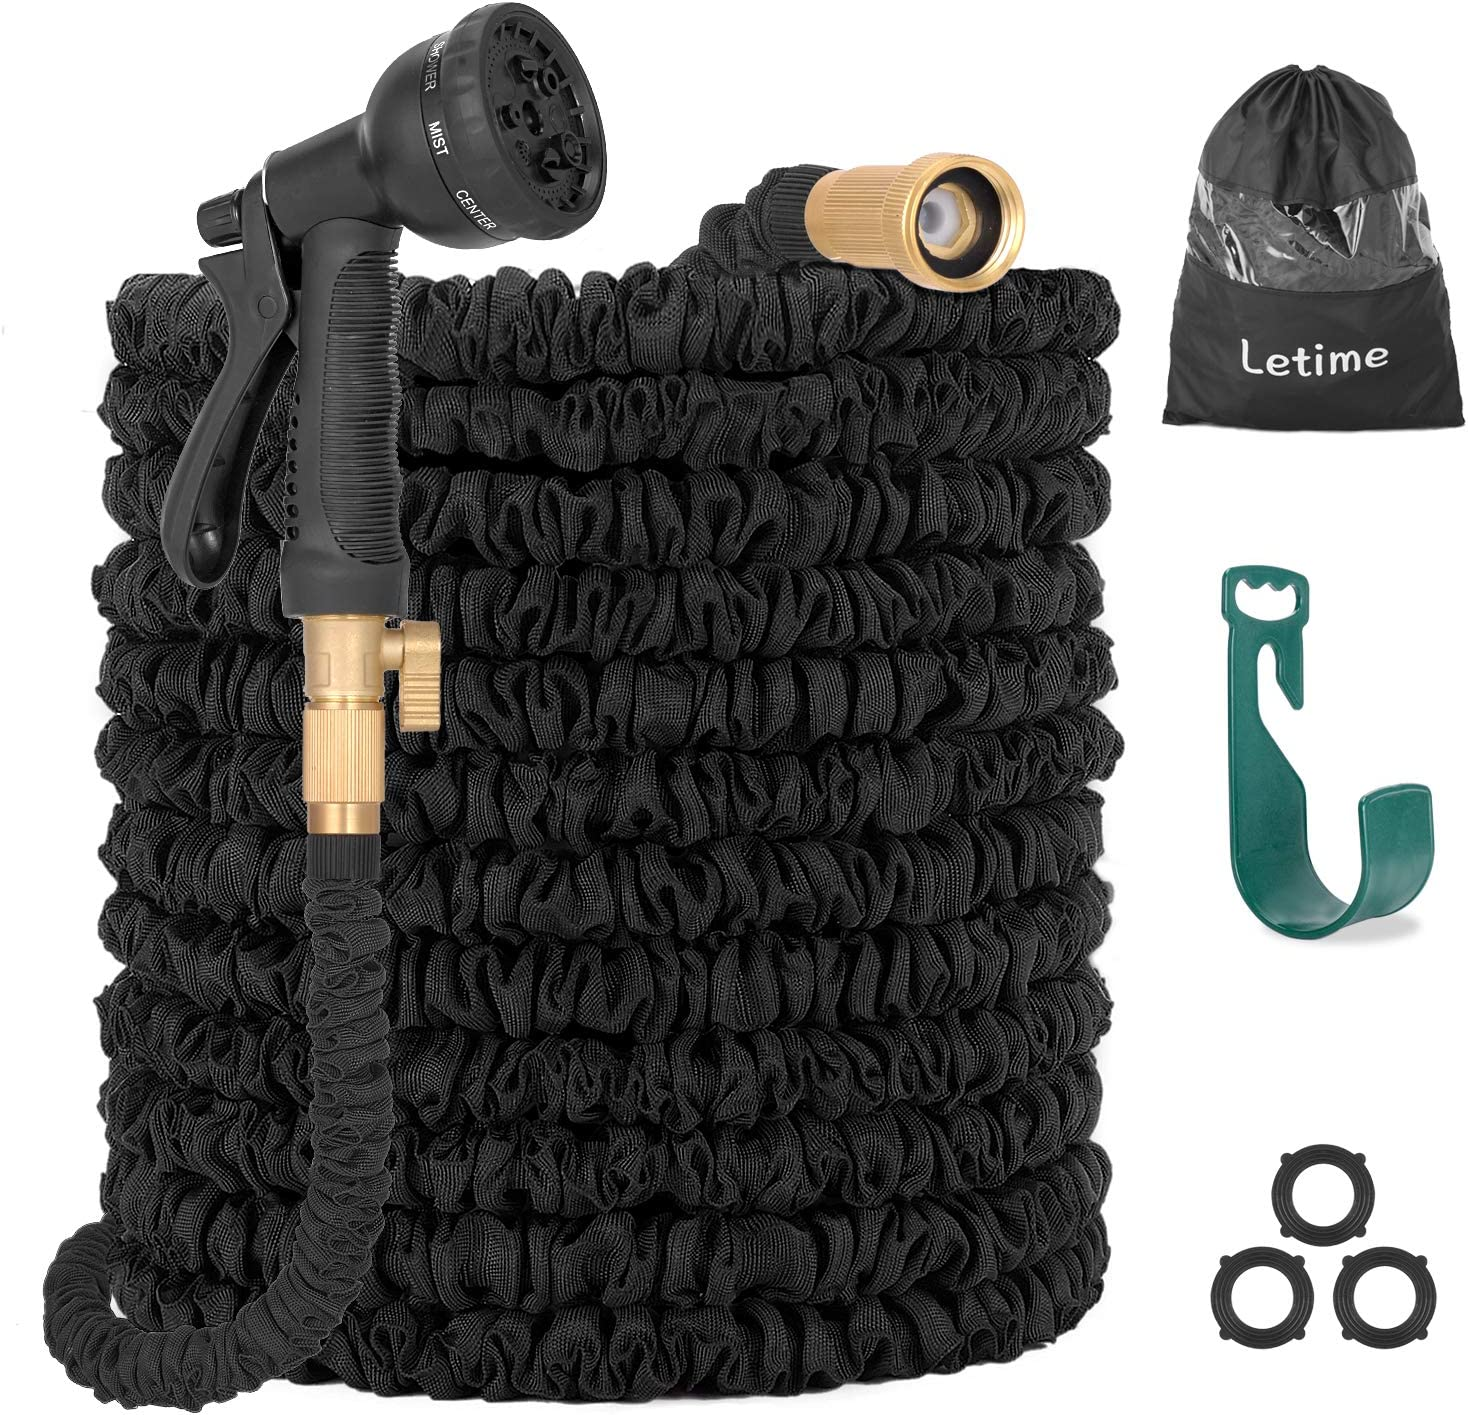 LETIME 75 ft Expandable Water Hose Set Retractable Garden Hose Flexible Hose Storage 3/4 inch Brass Valve 8 Function Hose Nozzle